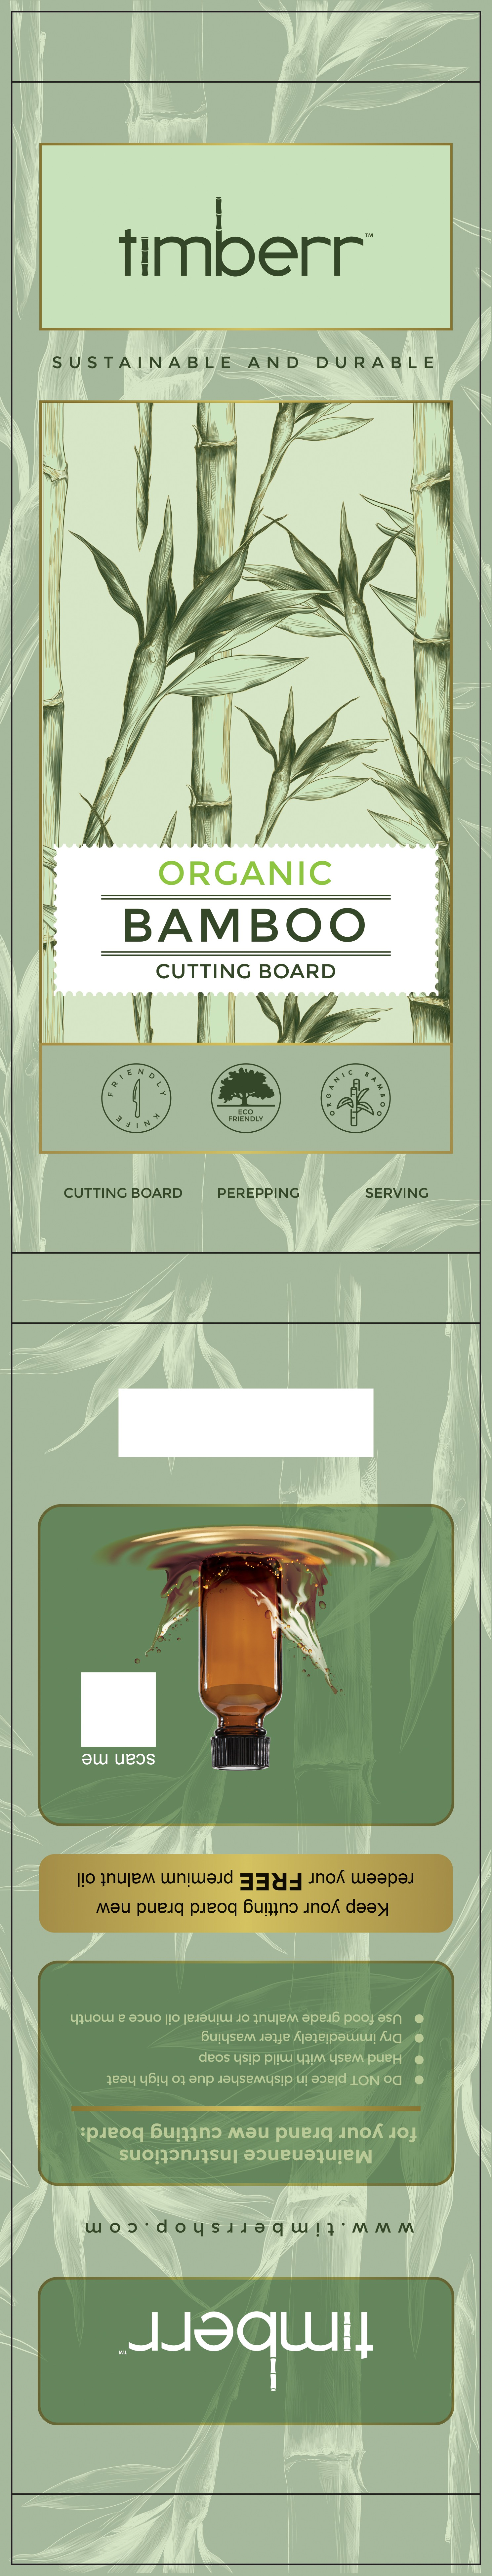 Bamboo Cutting Board Paper Card Packaging for Eco Amazon Customers